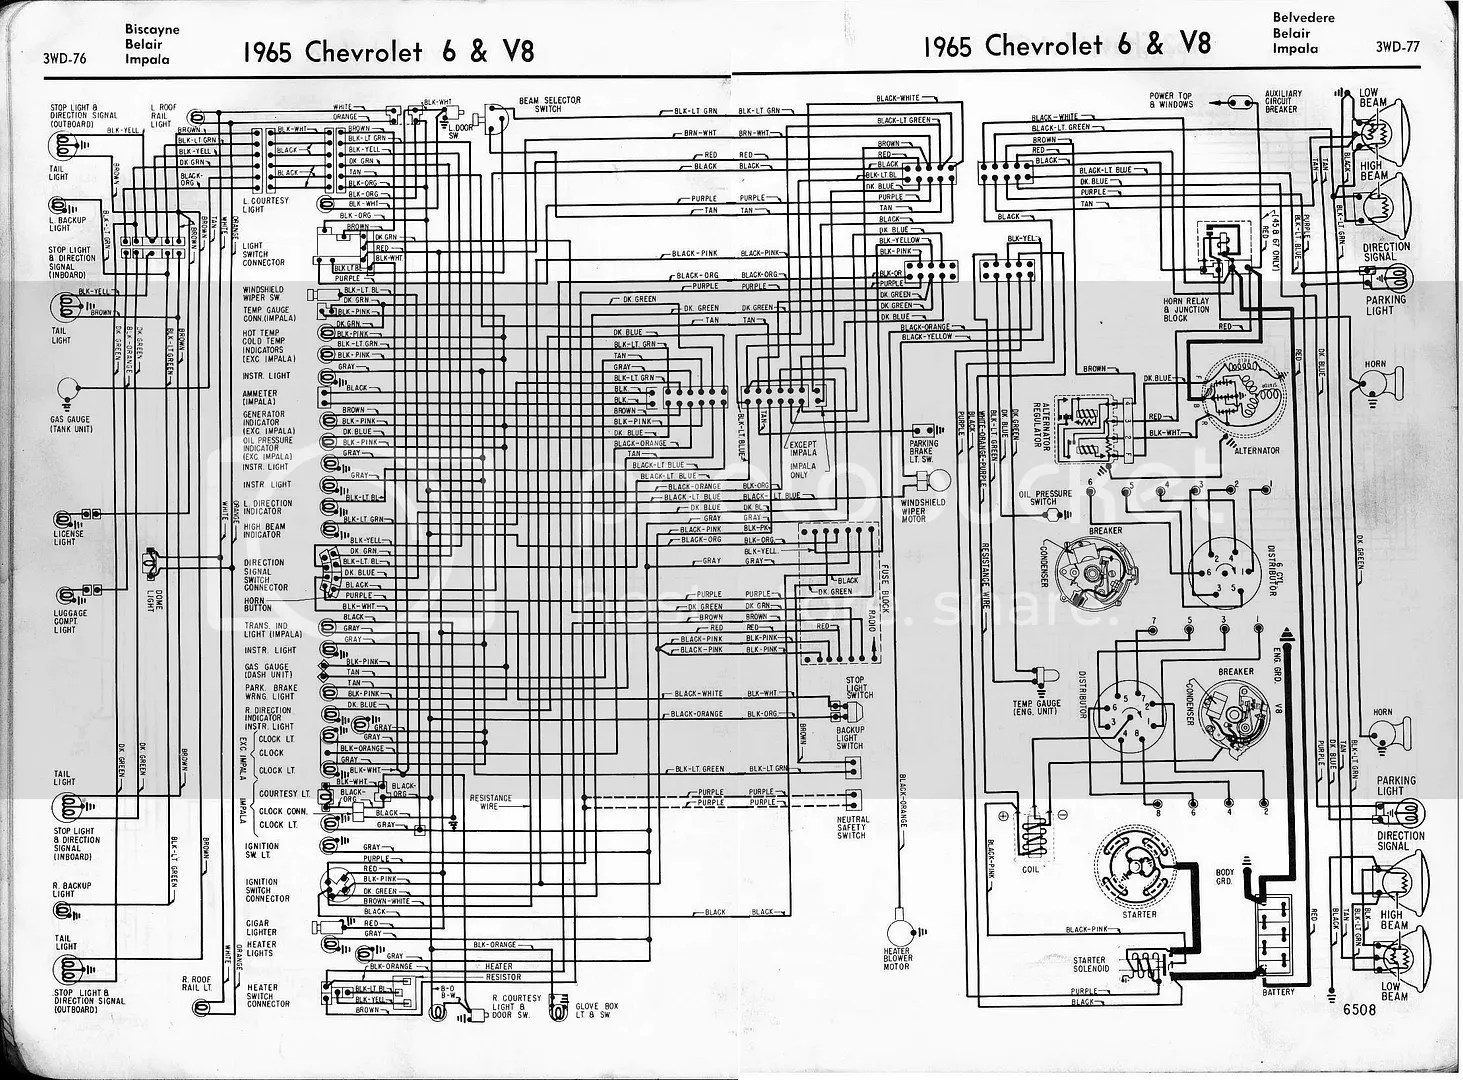 hight resolution of 2000 impala abs wiring diagram schematics wiring diagrams u2022 rh seniorlivinguniversity co 1970 chevy truck fuse